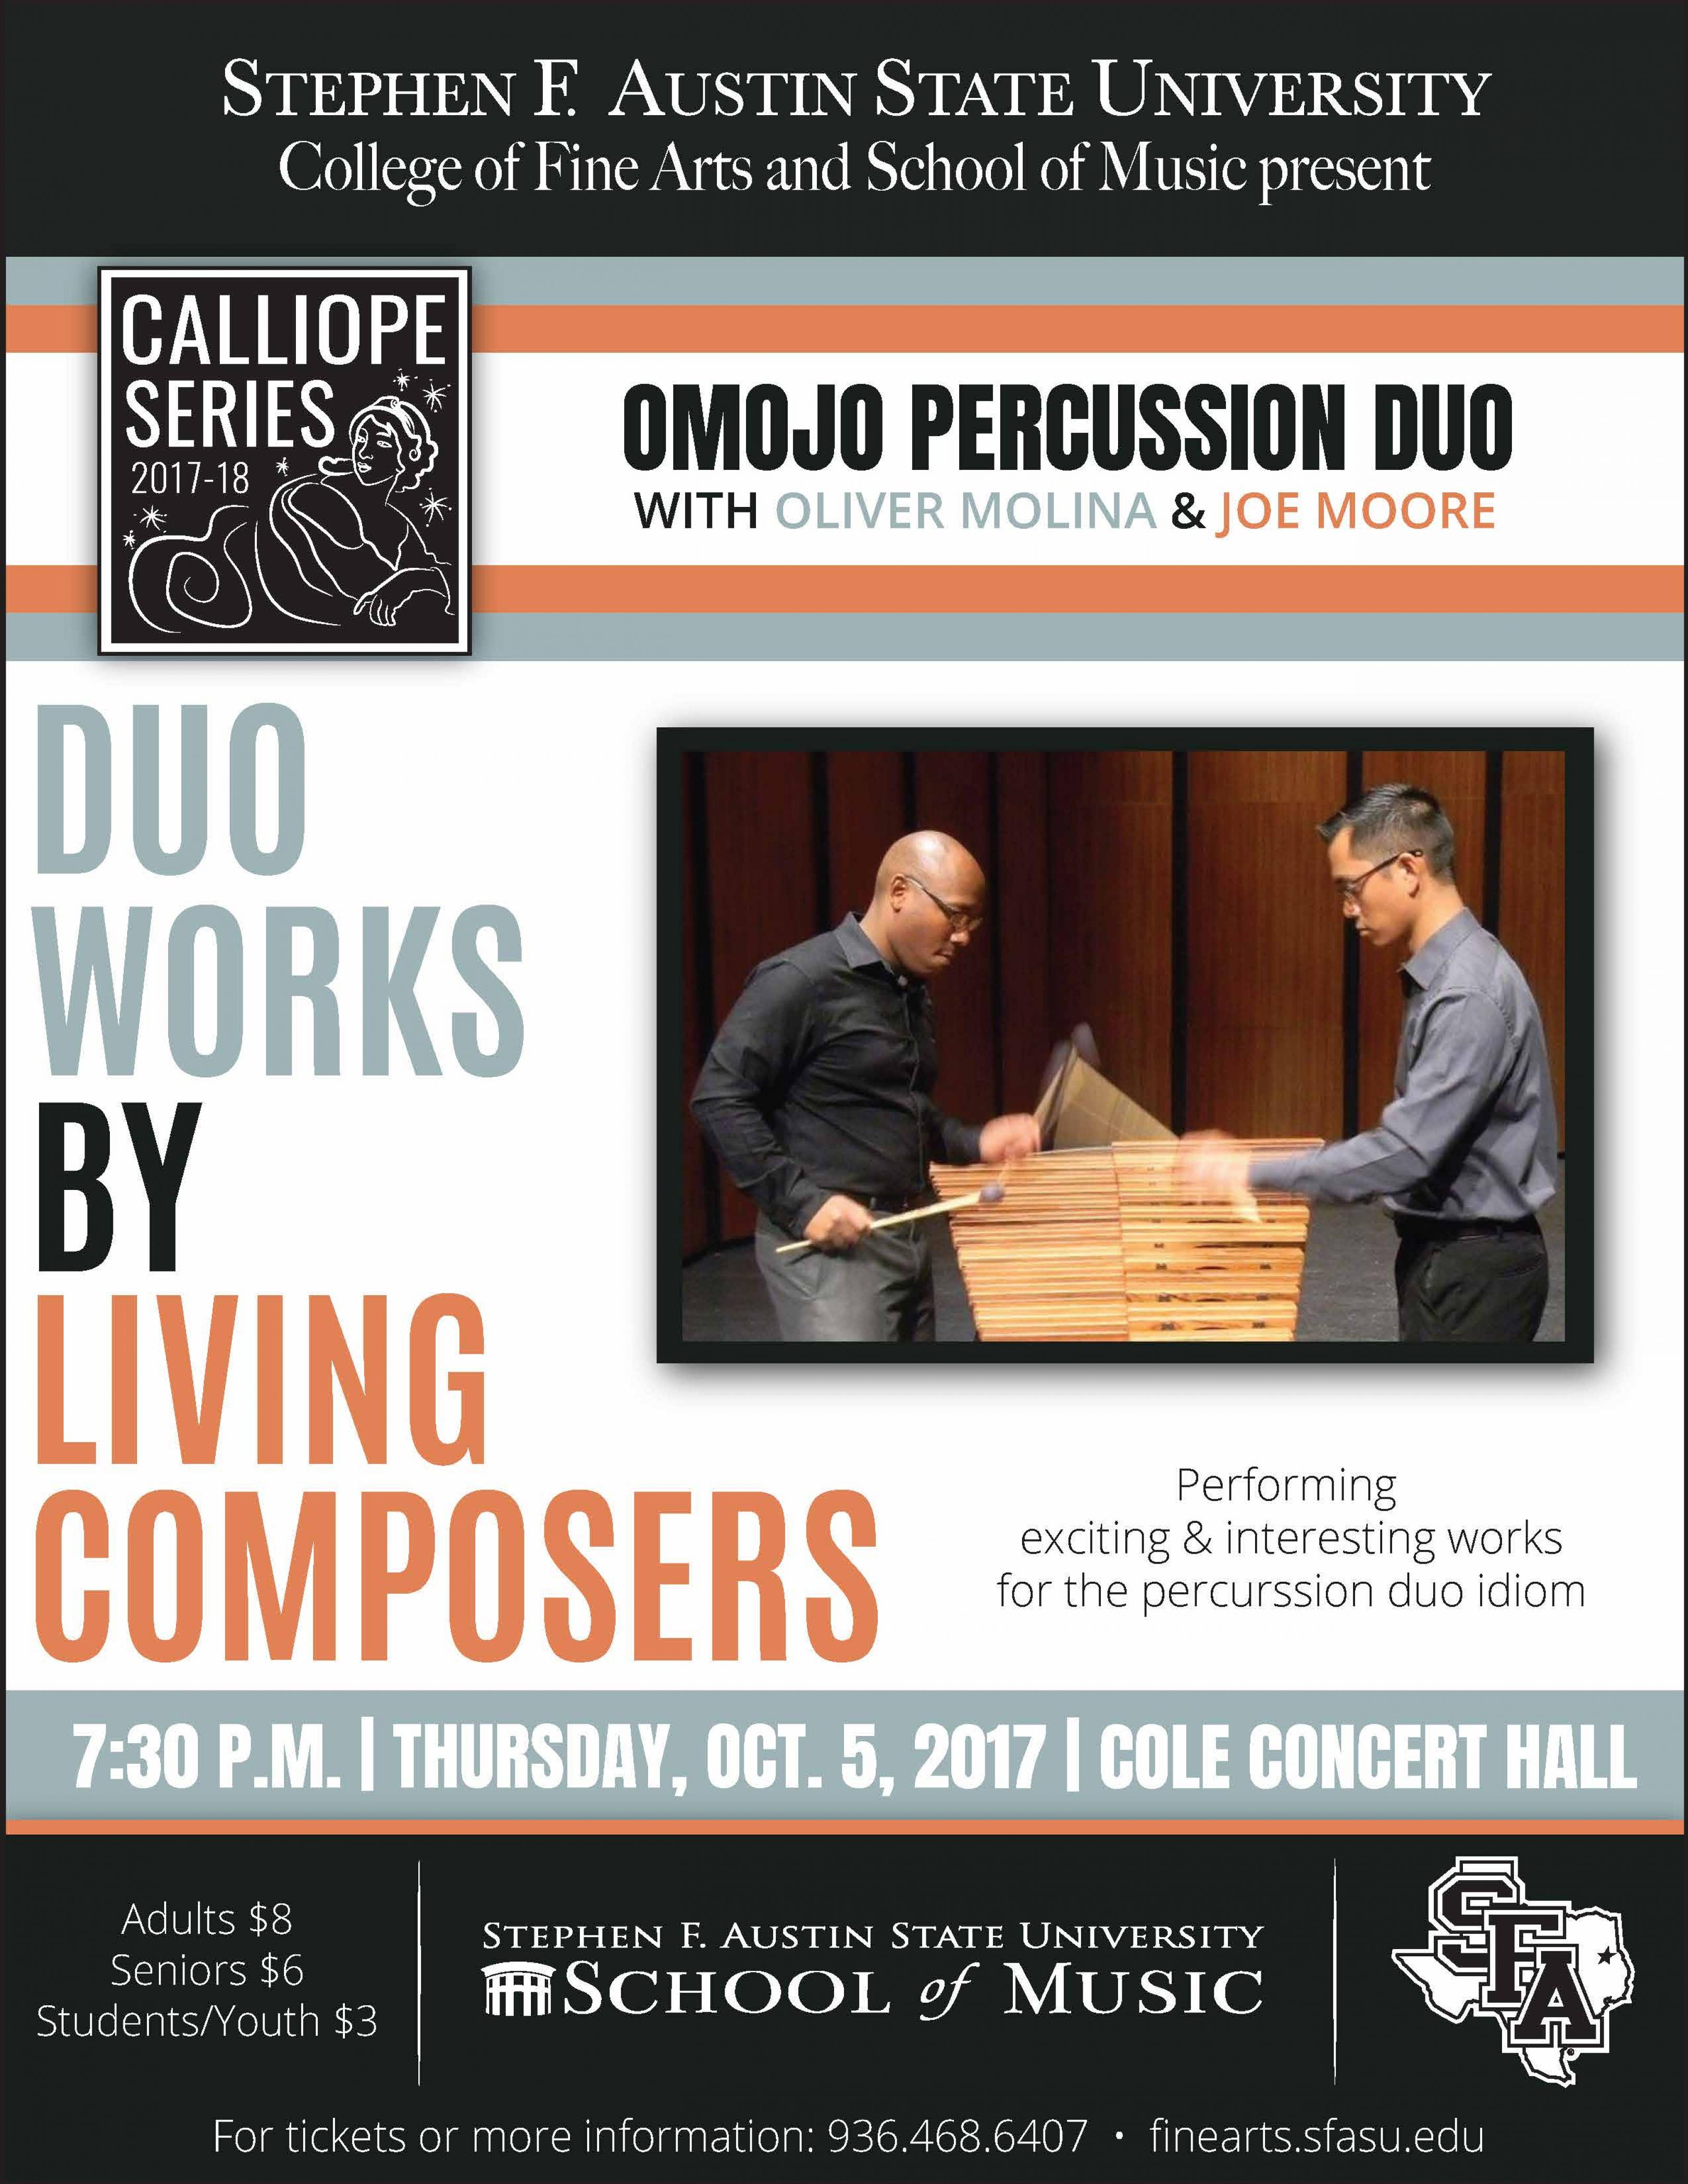 publicity image for Omojo Percussion Duo